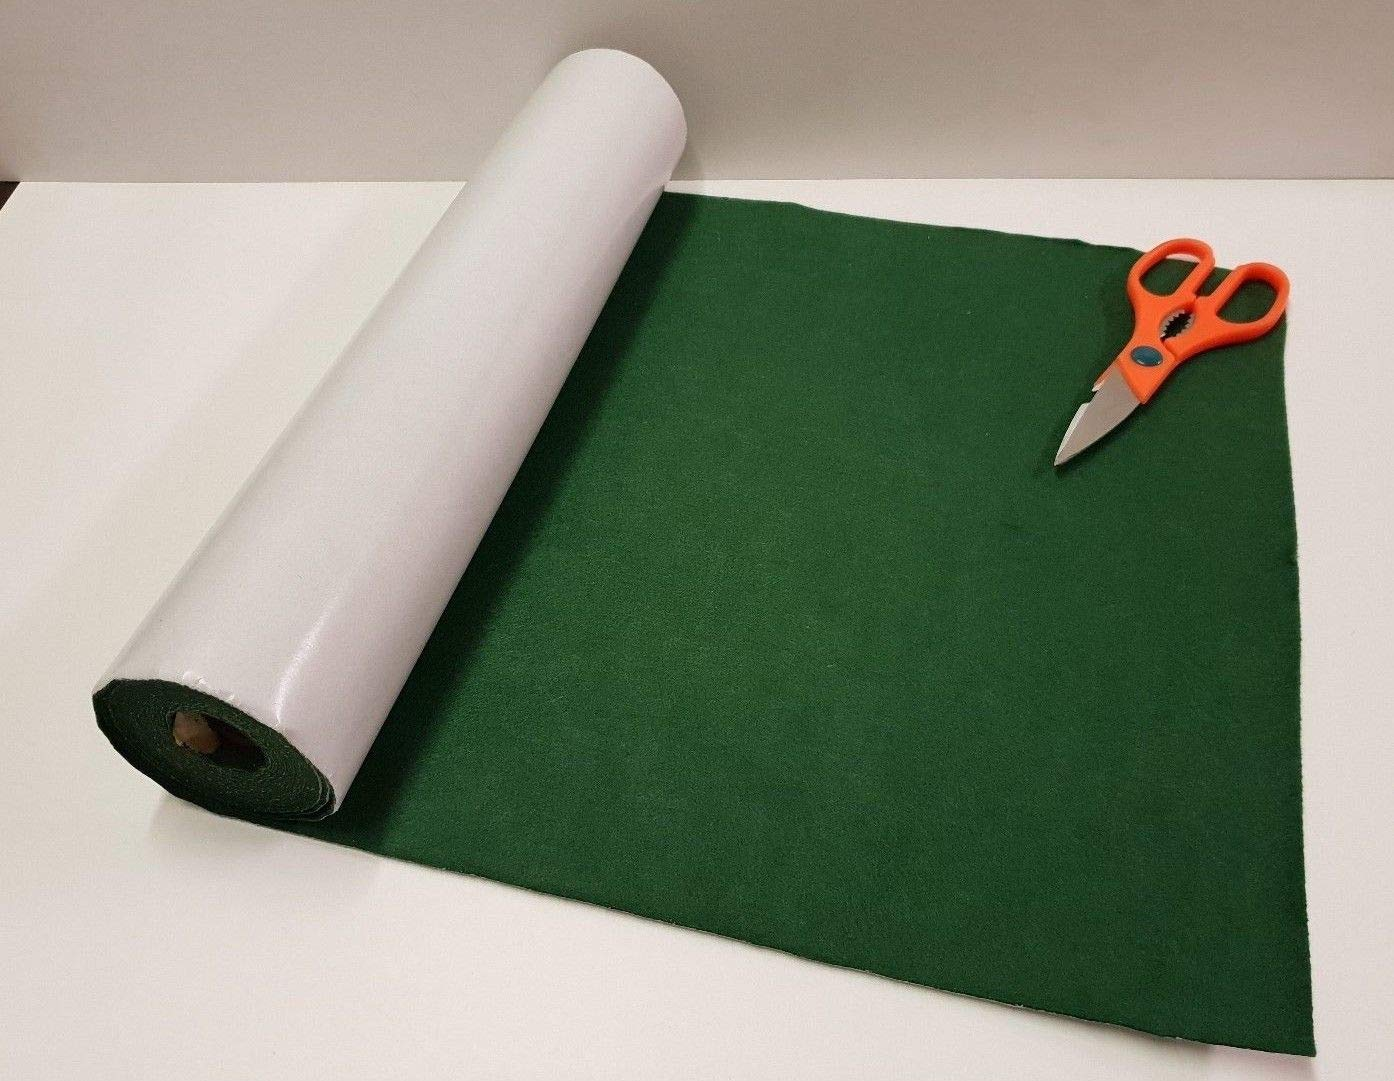 One Metre x 450mm Wide roll of Green Sticky Back SELF Adhesive Felt/Baize GCH